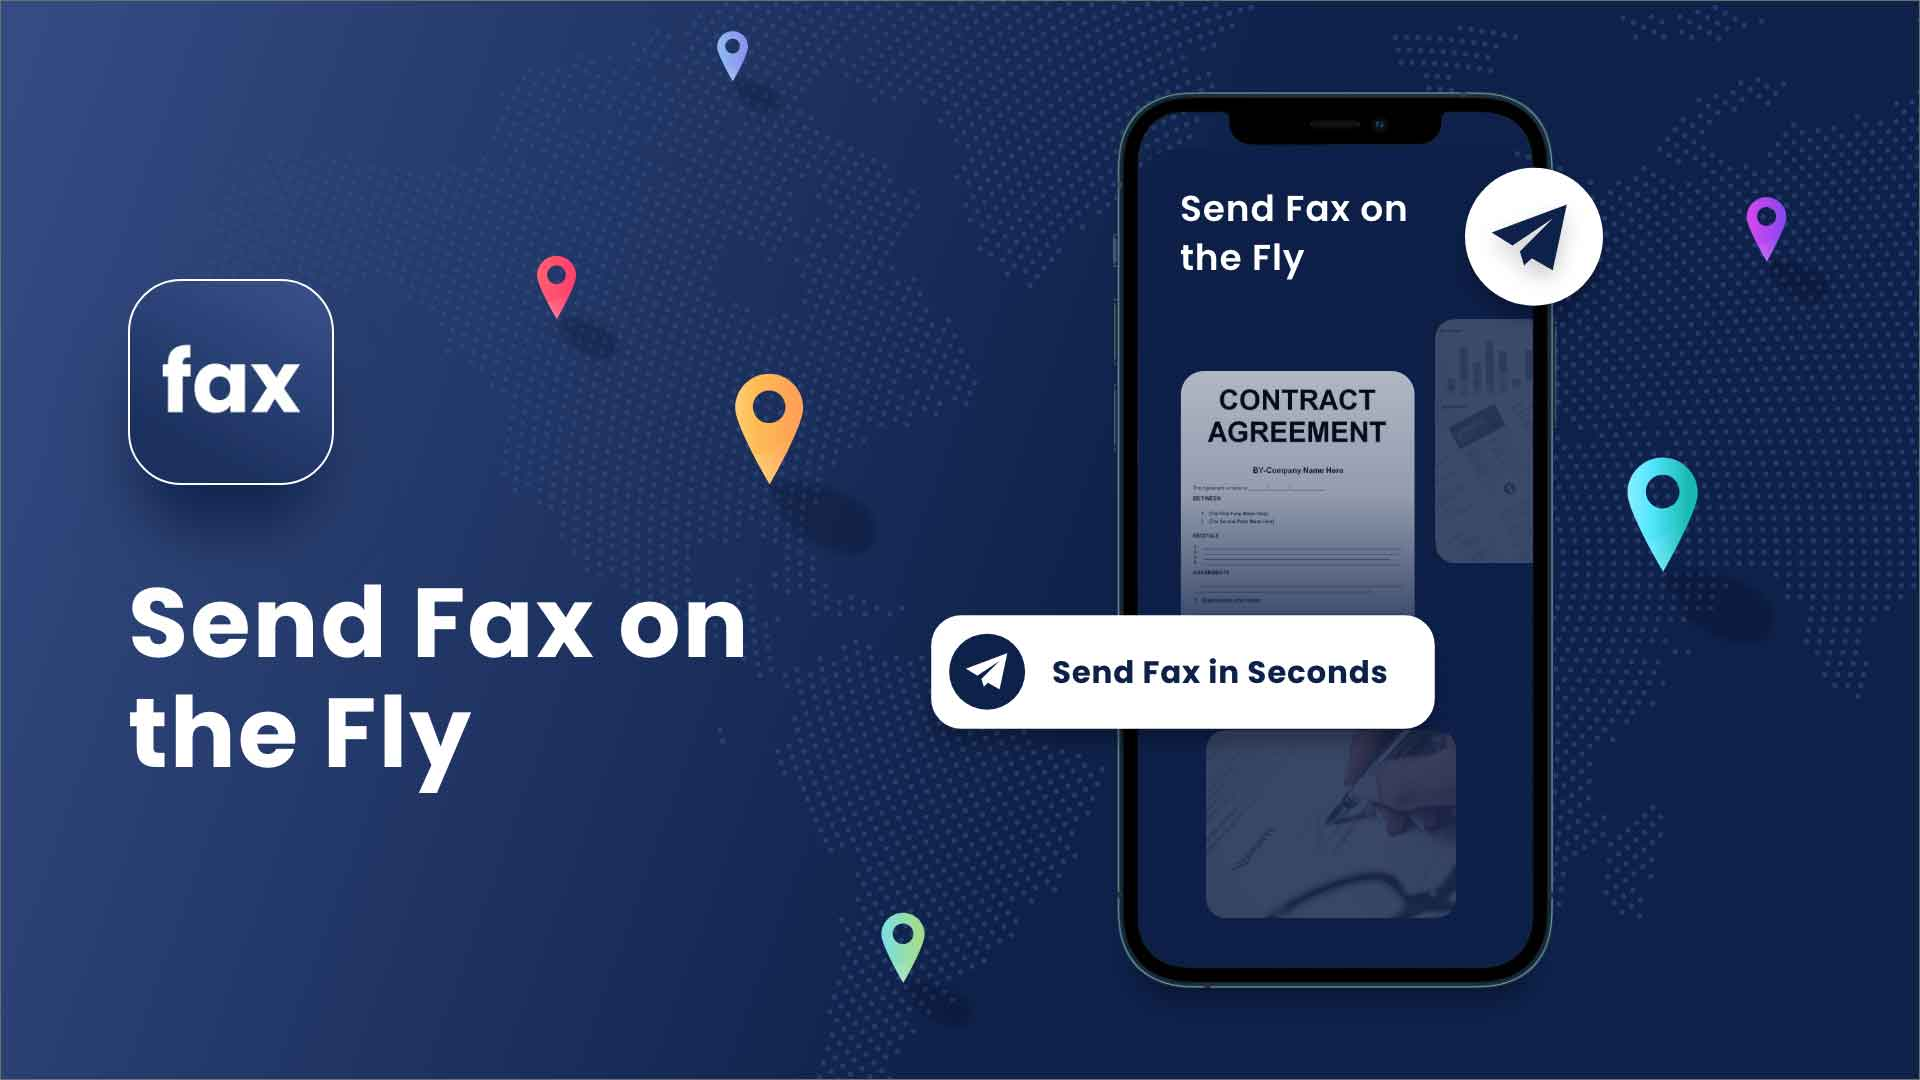 Send Fax from iPhone